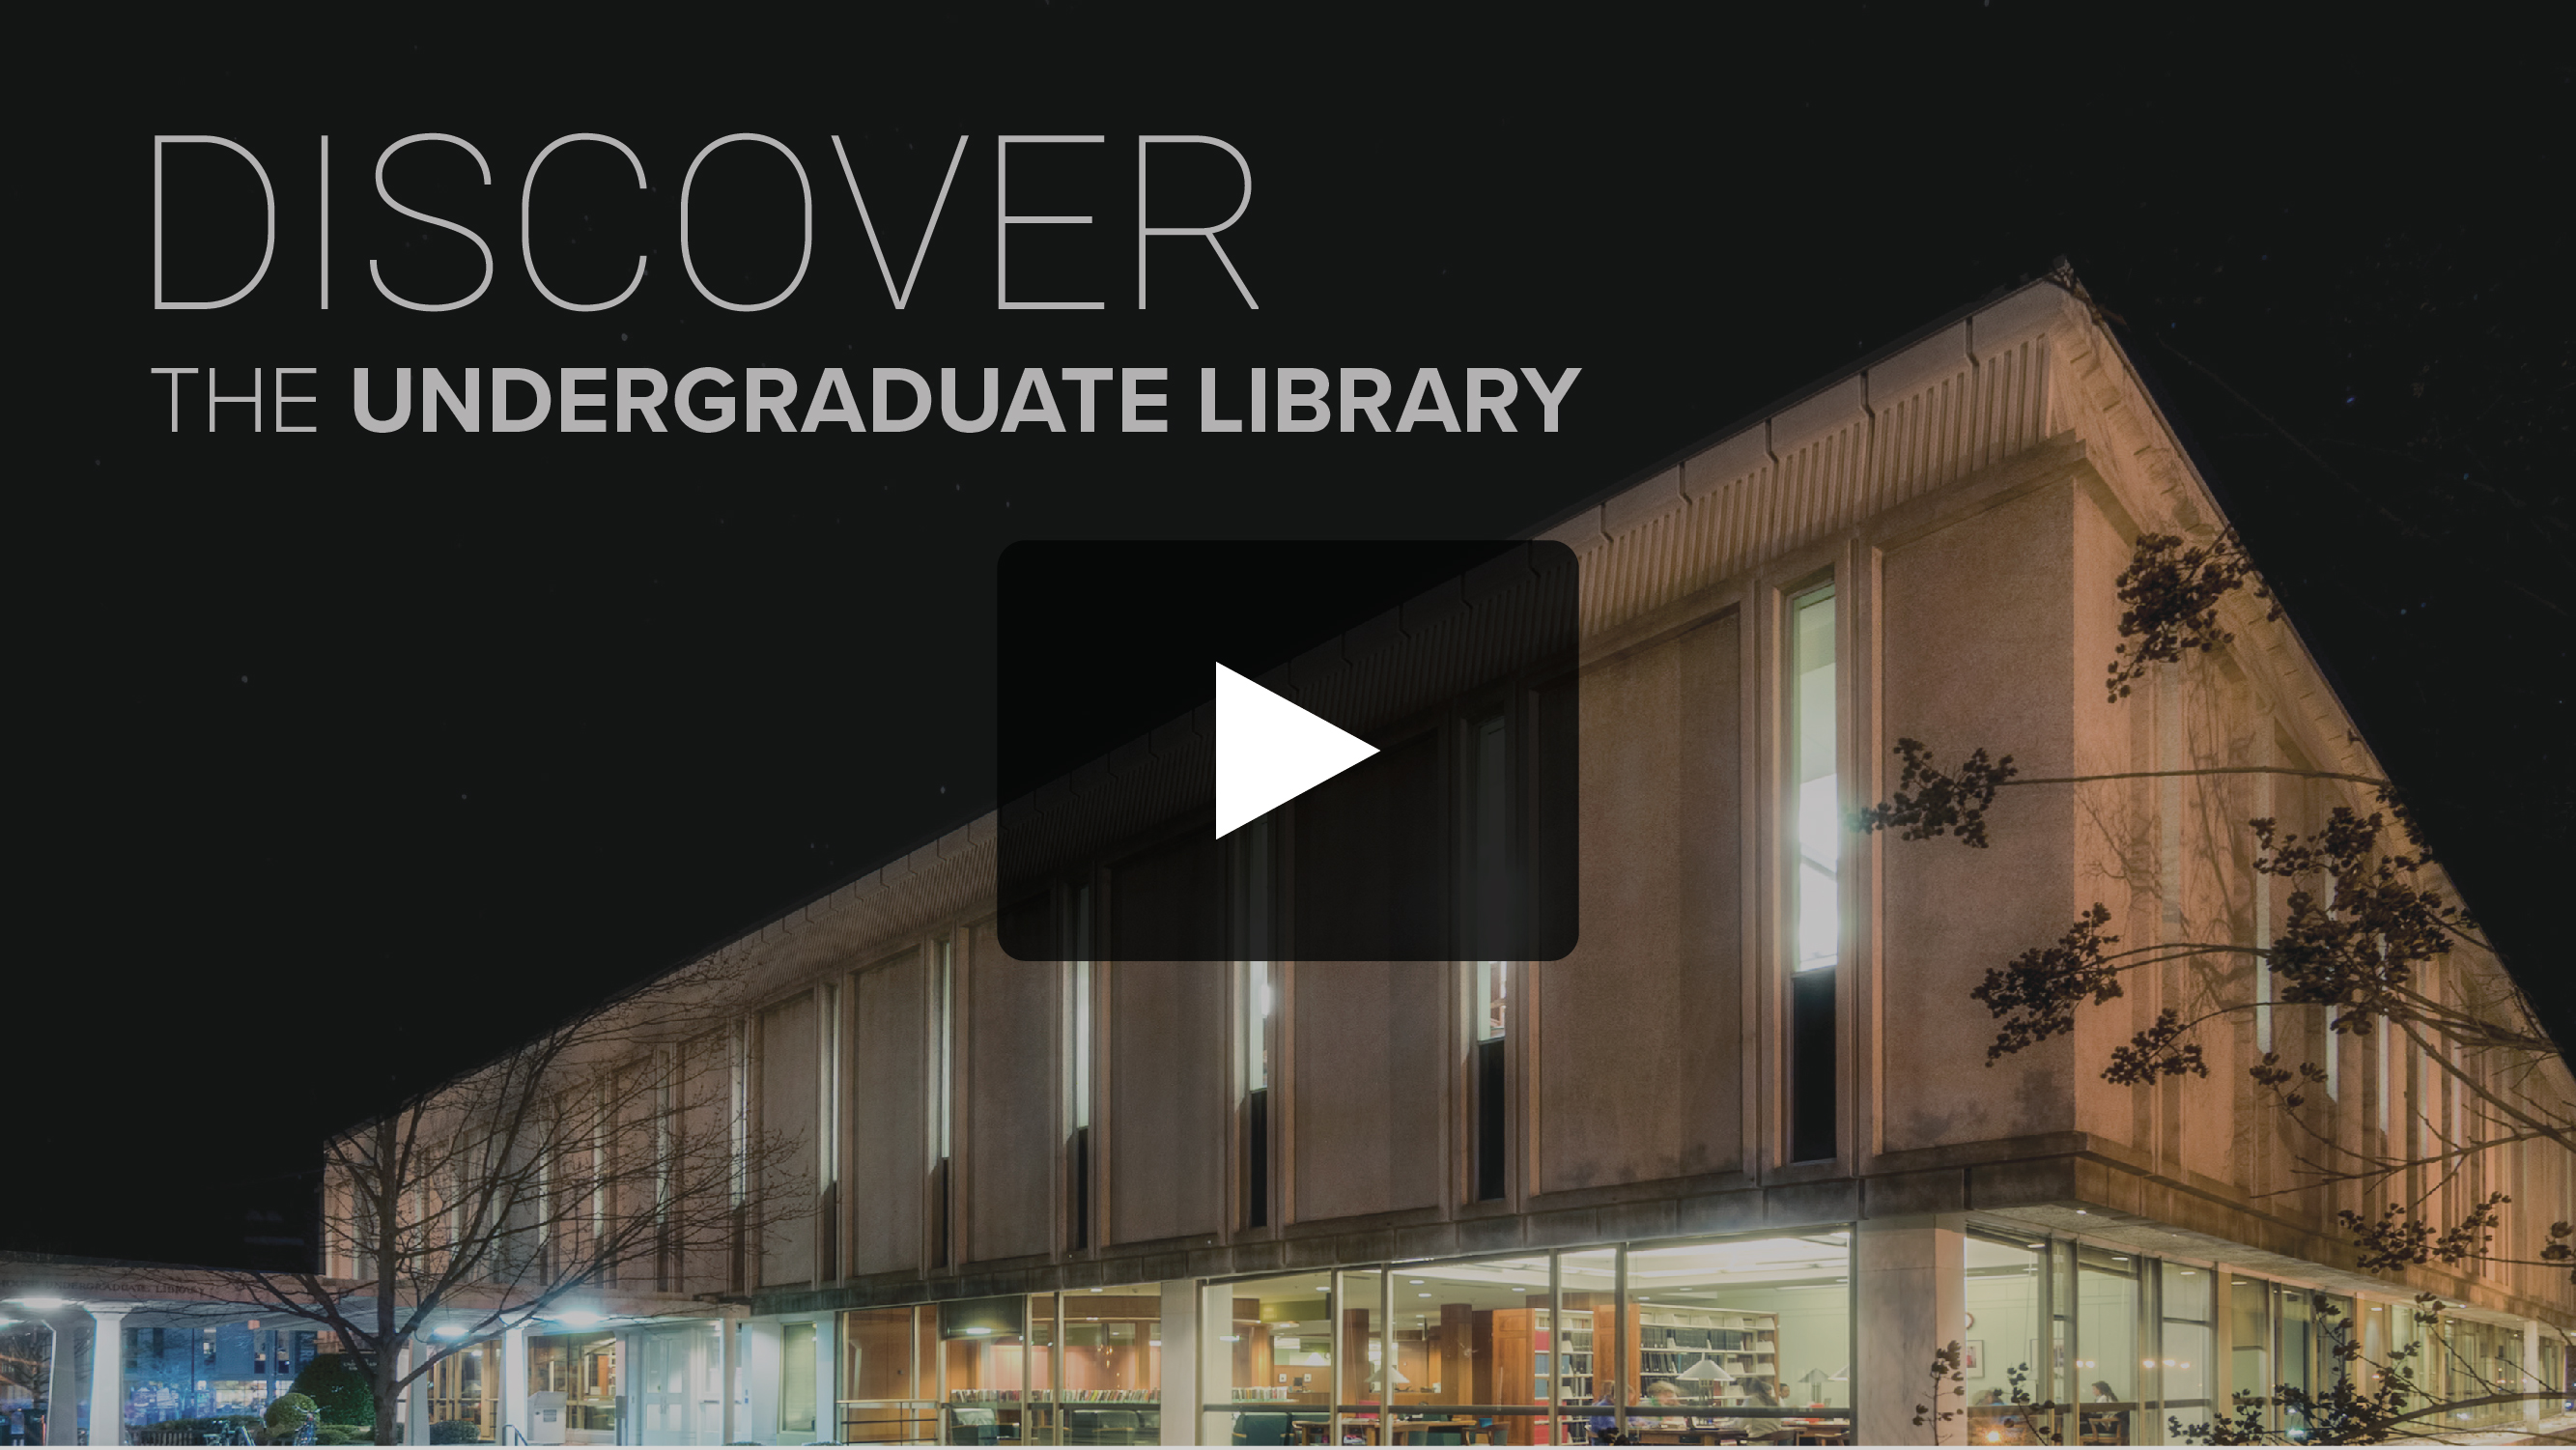 Discover the Undergraduate Library